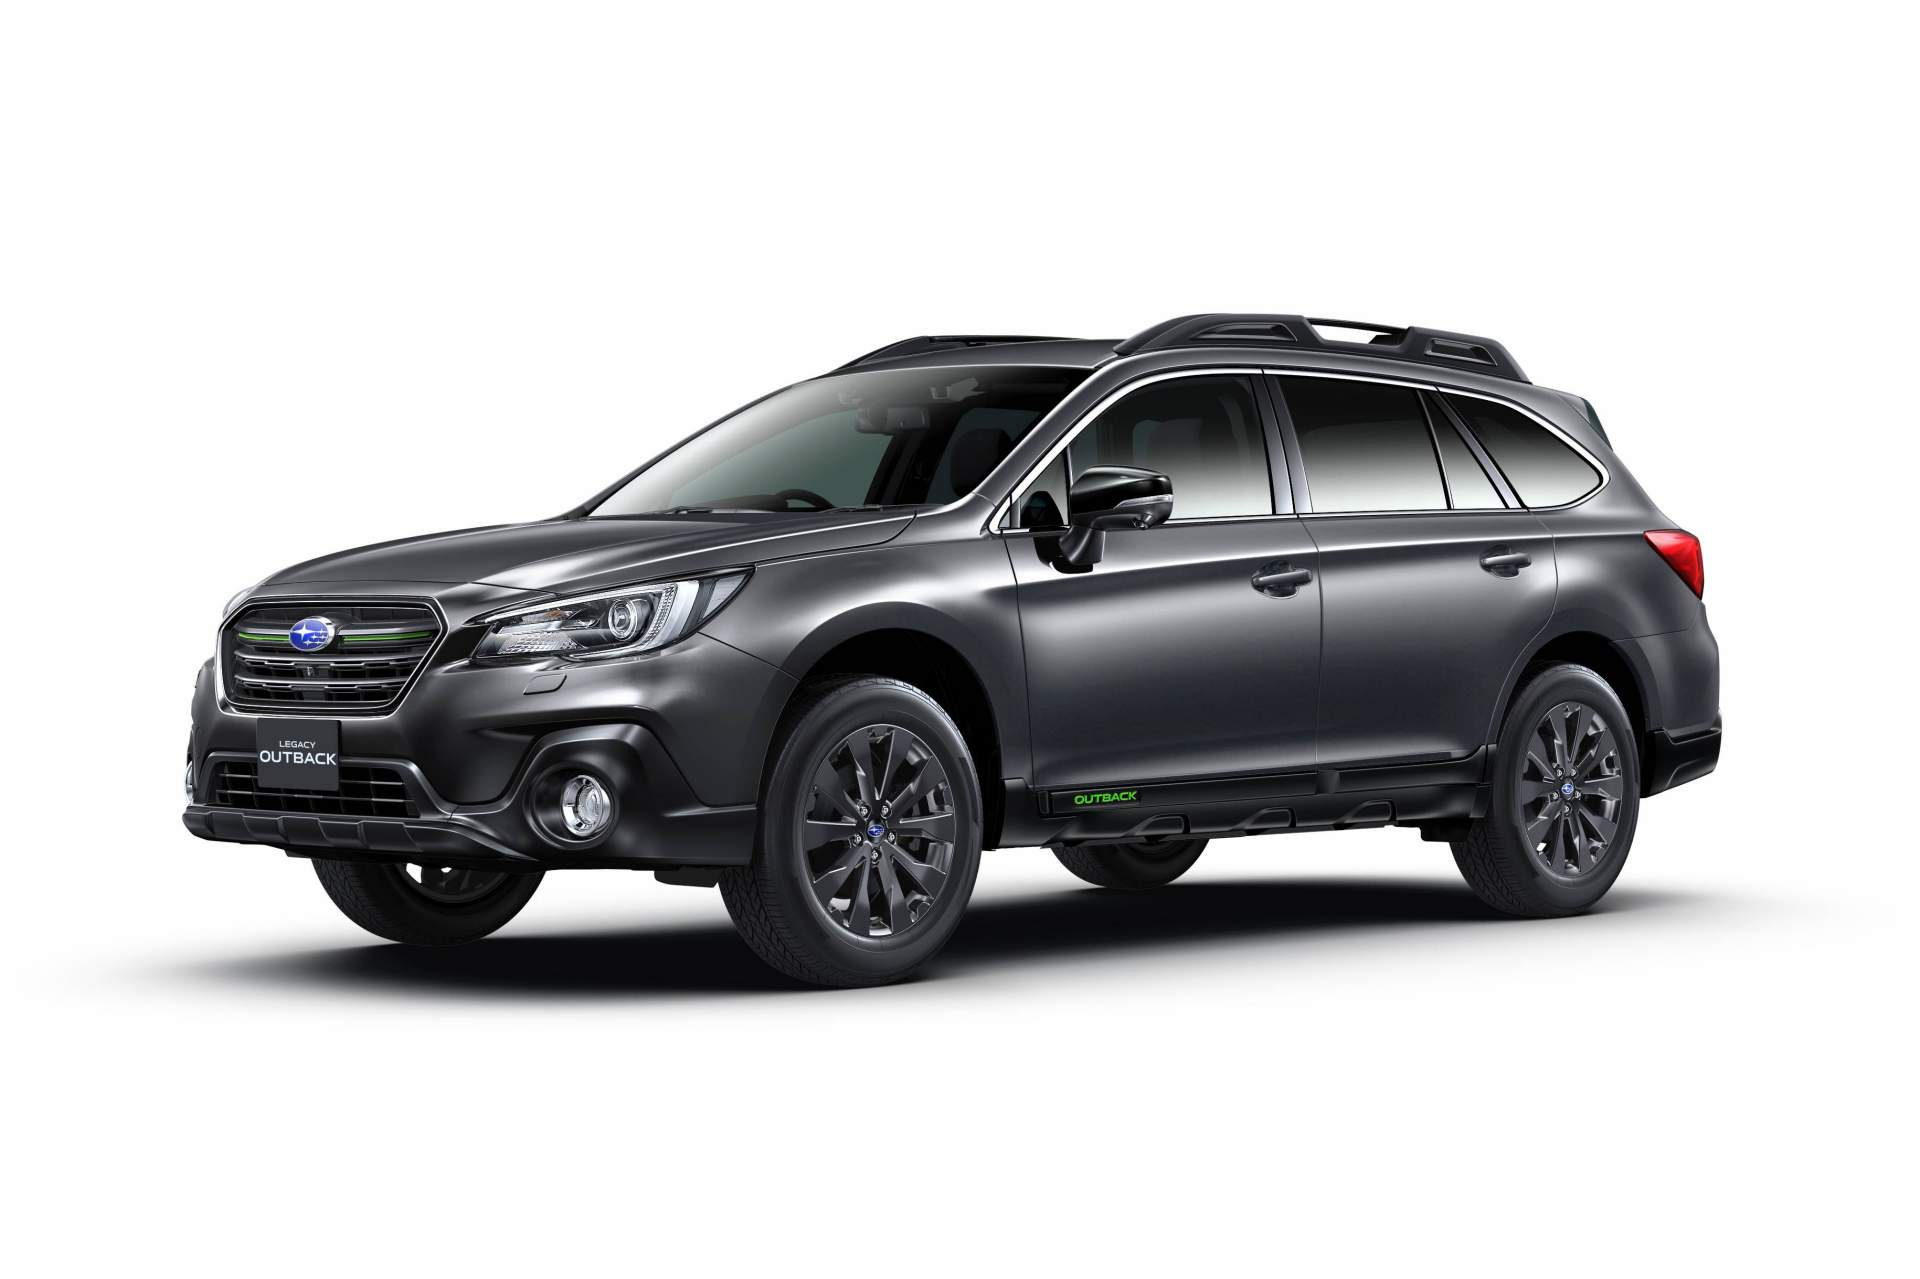 7adf9285-subaru-outback-x-break-2